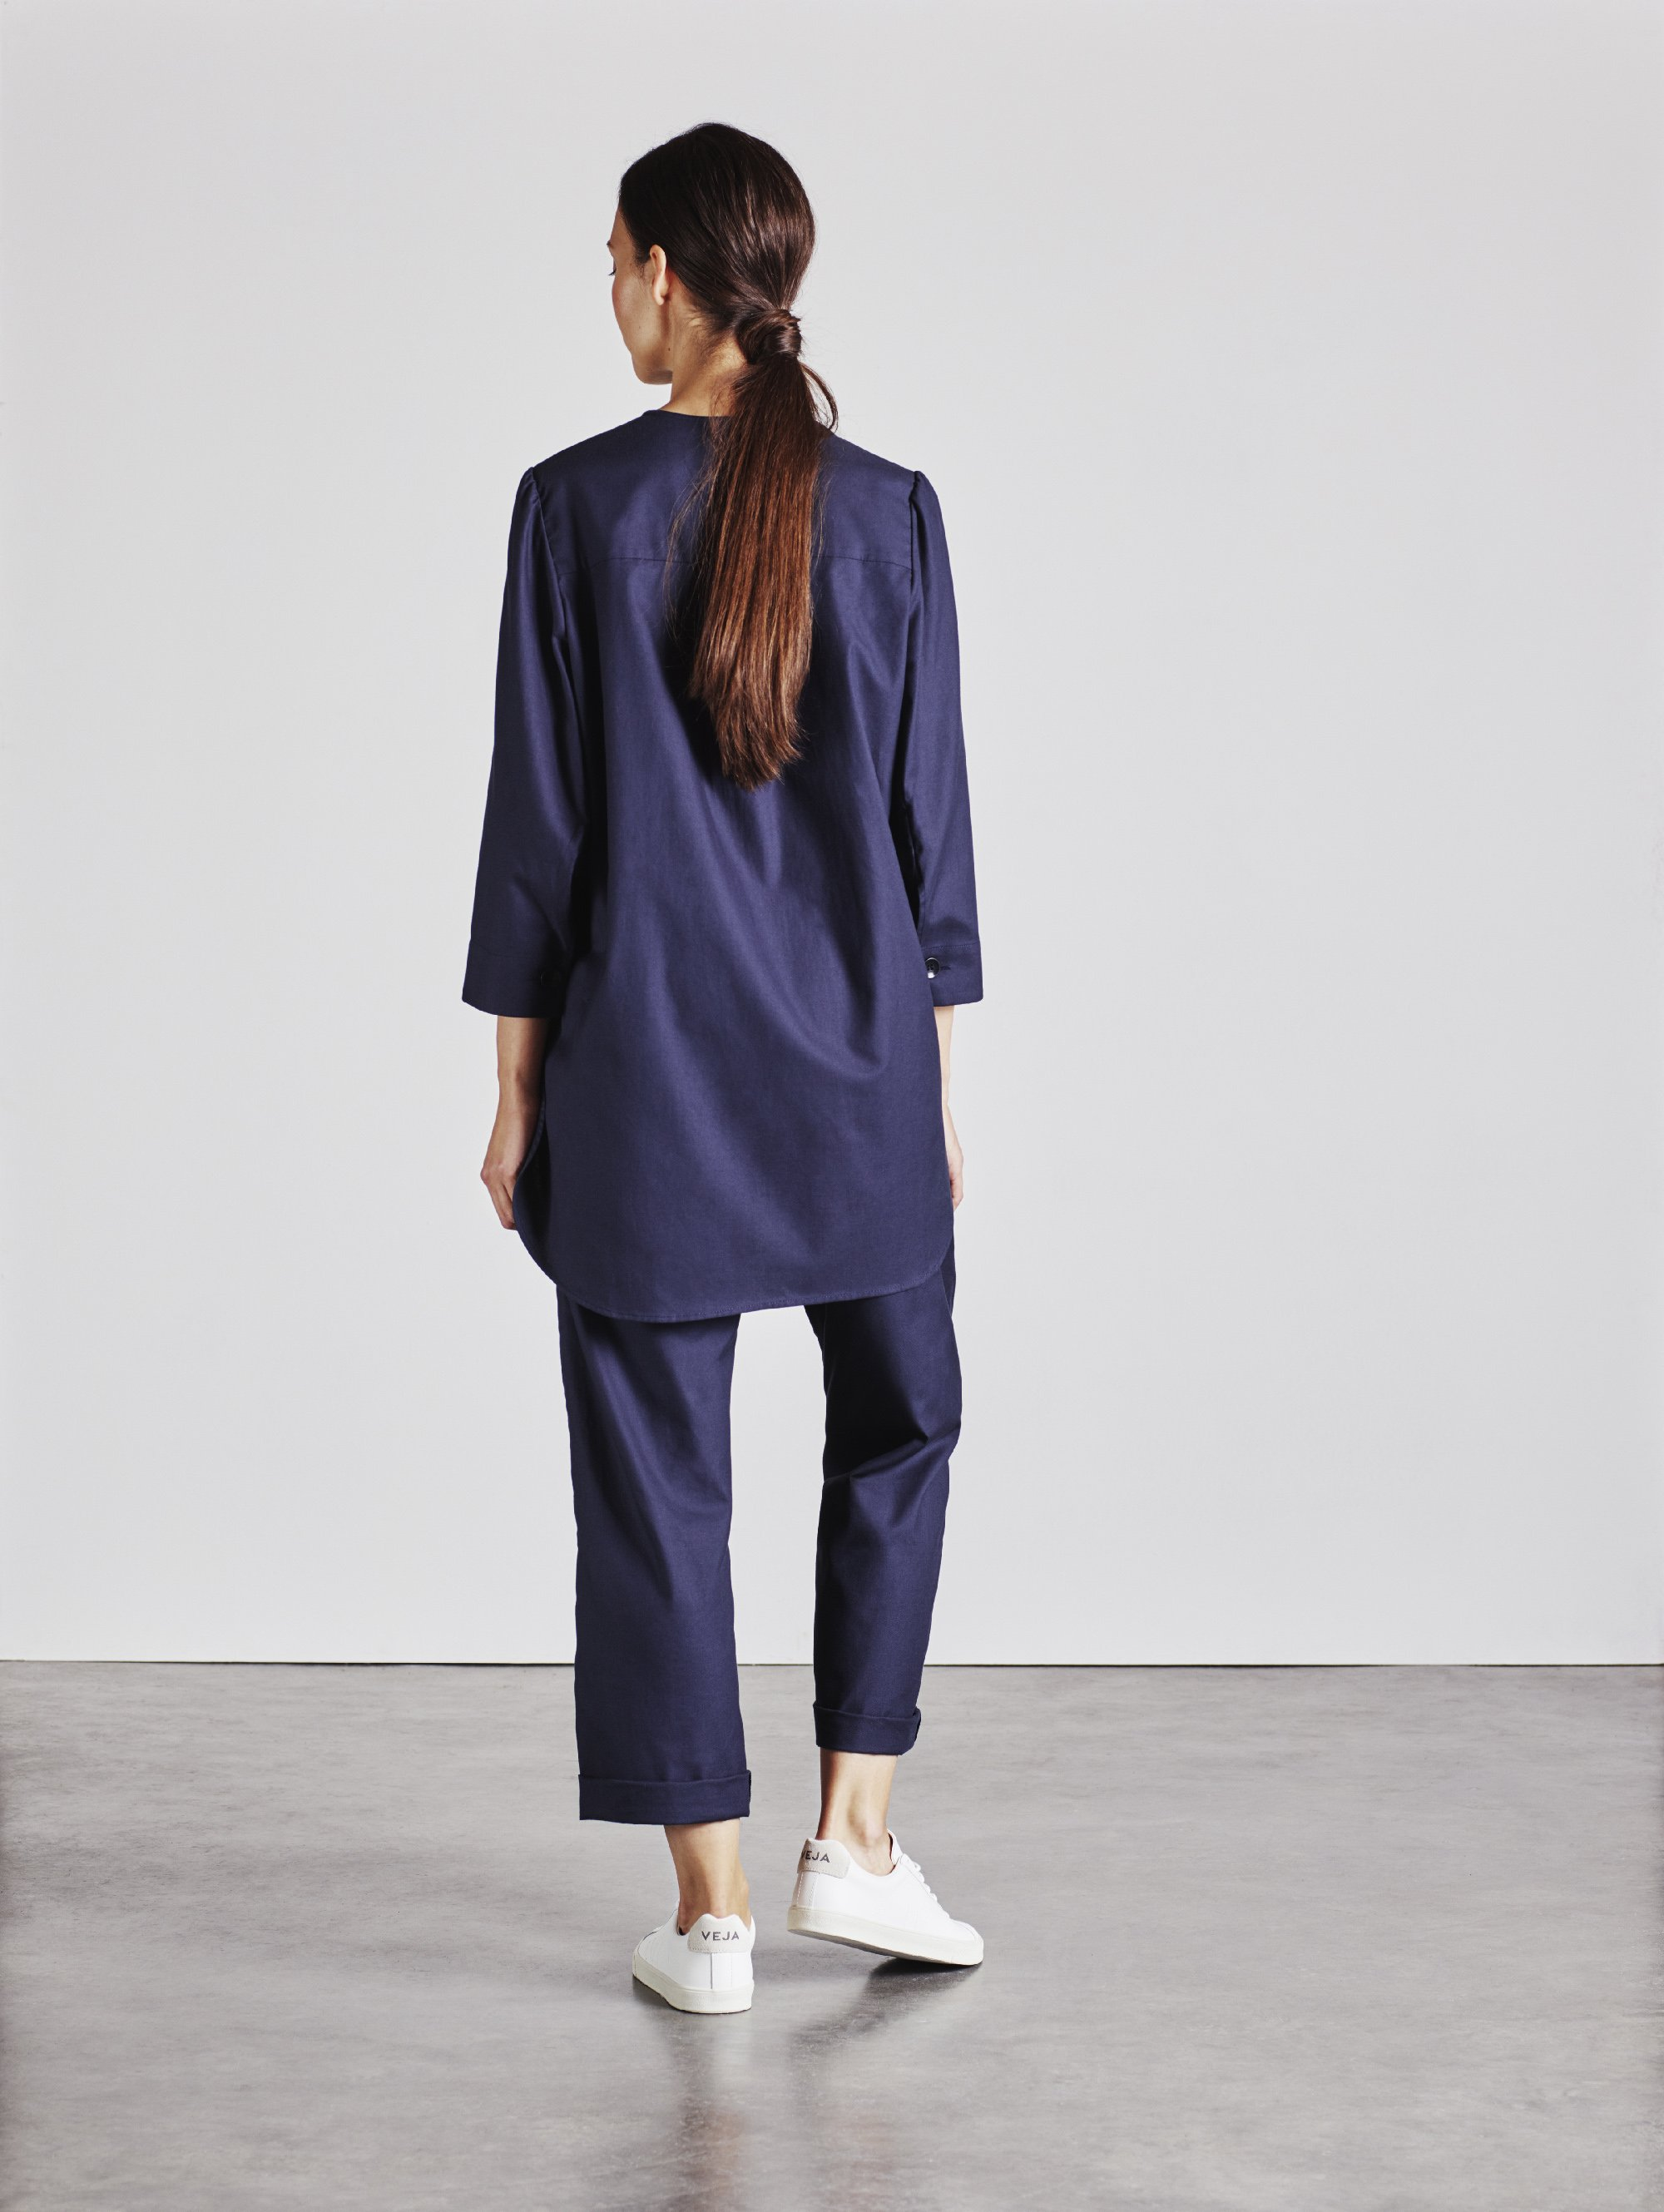 Alice Early Bethan Shirt